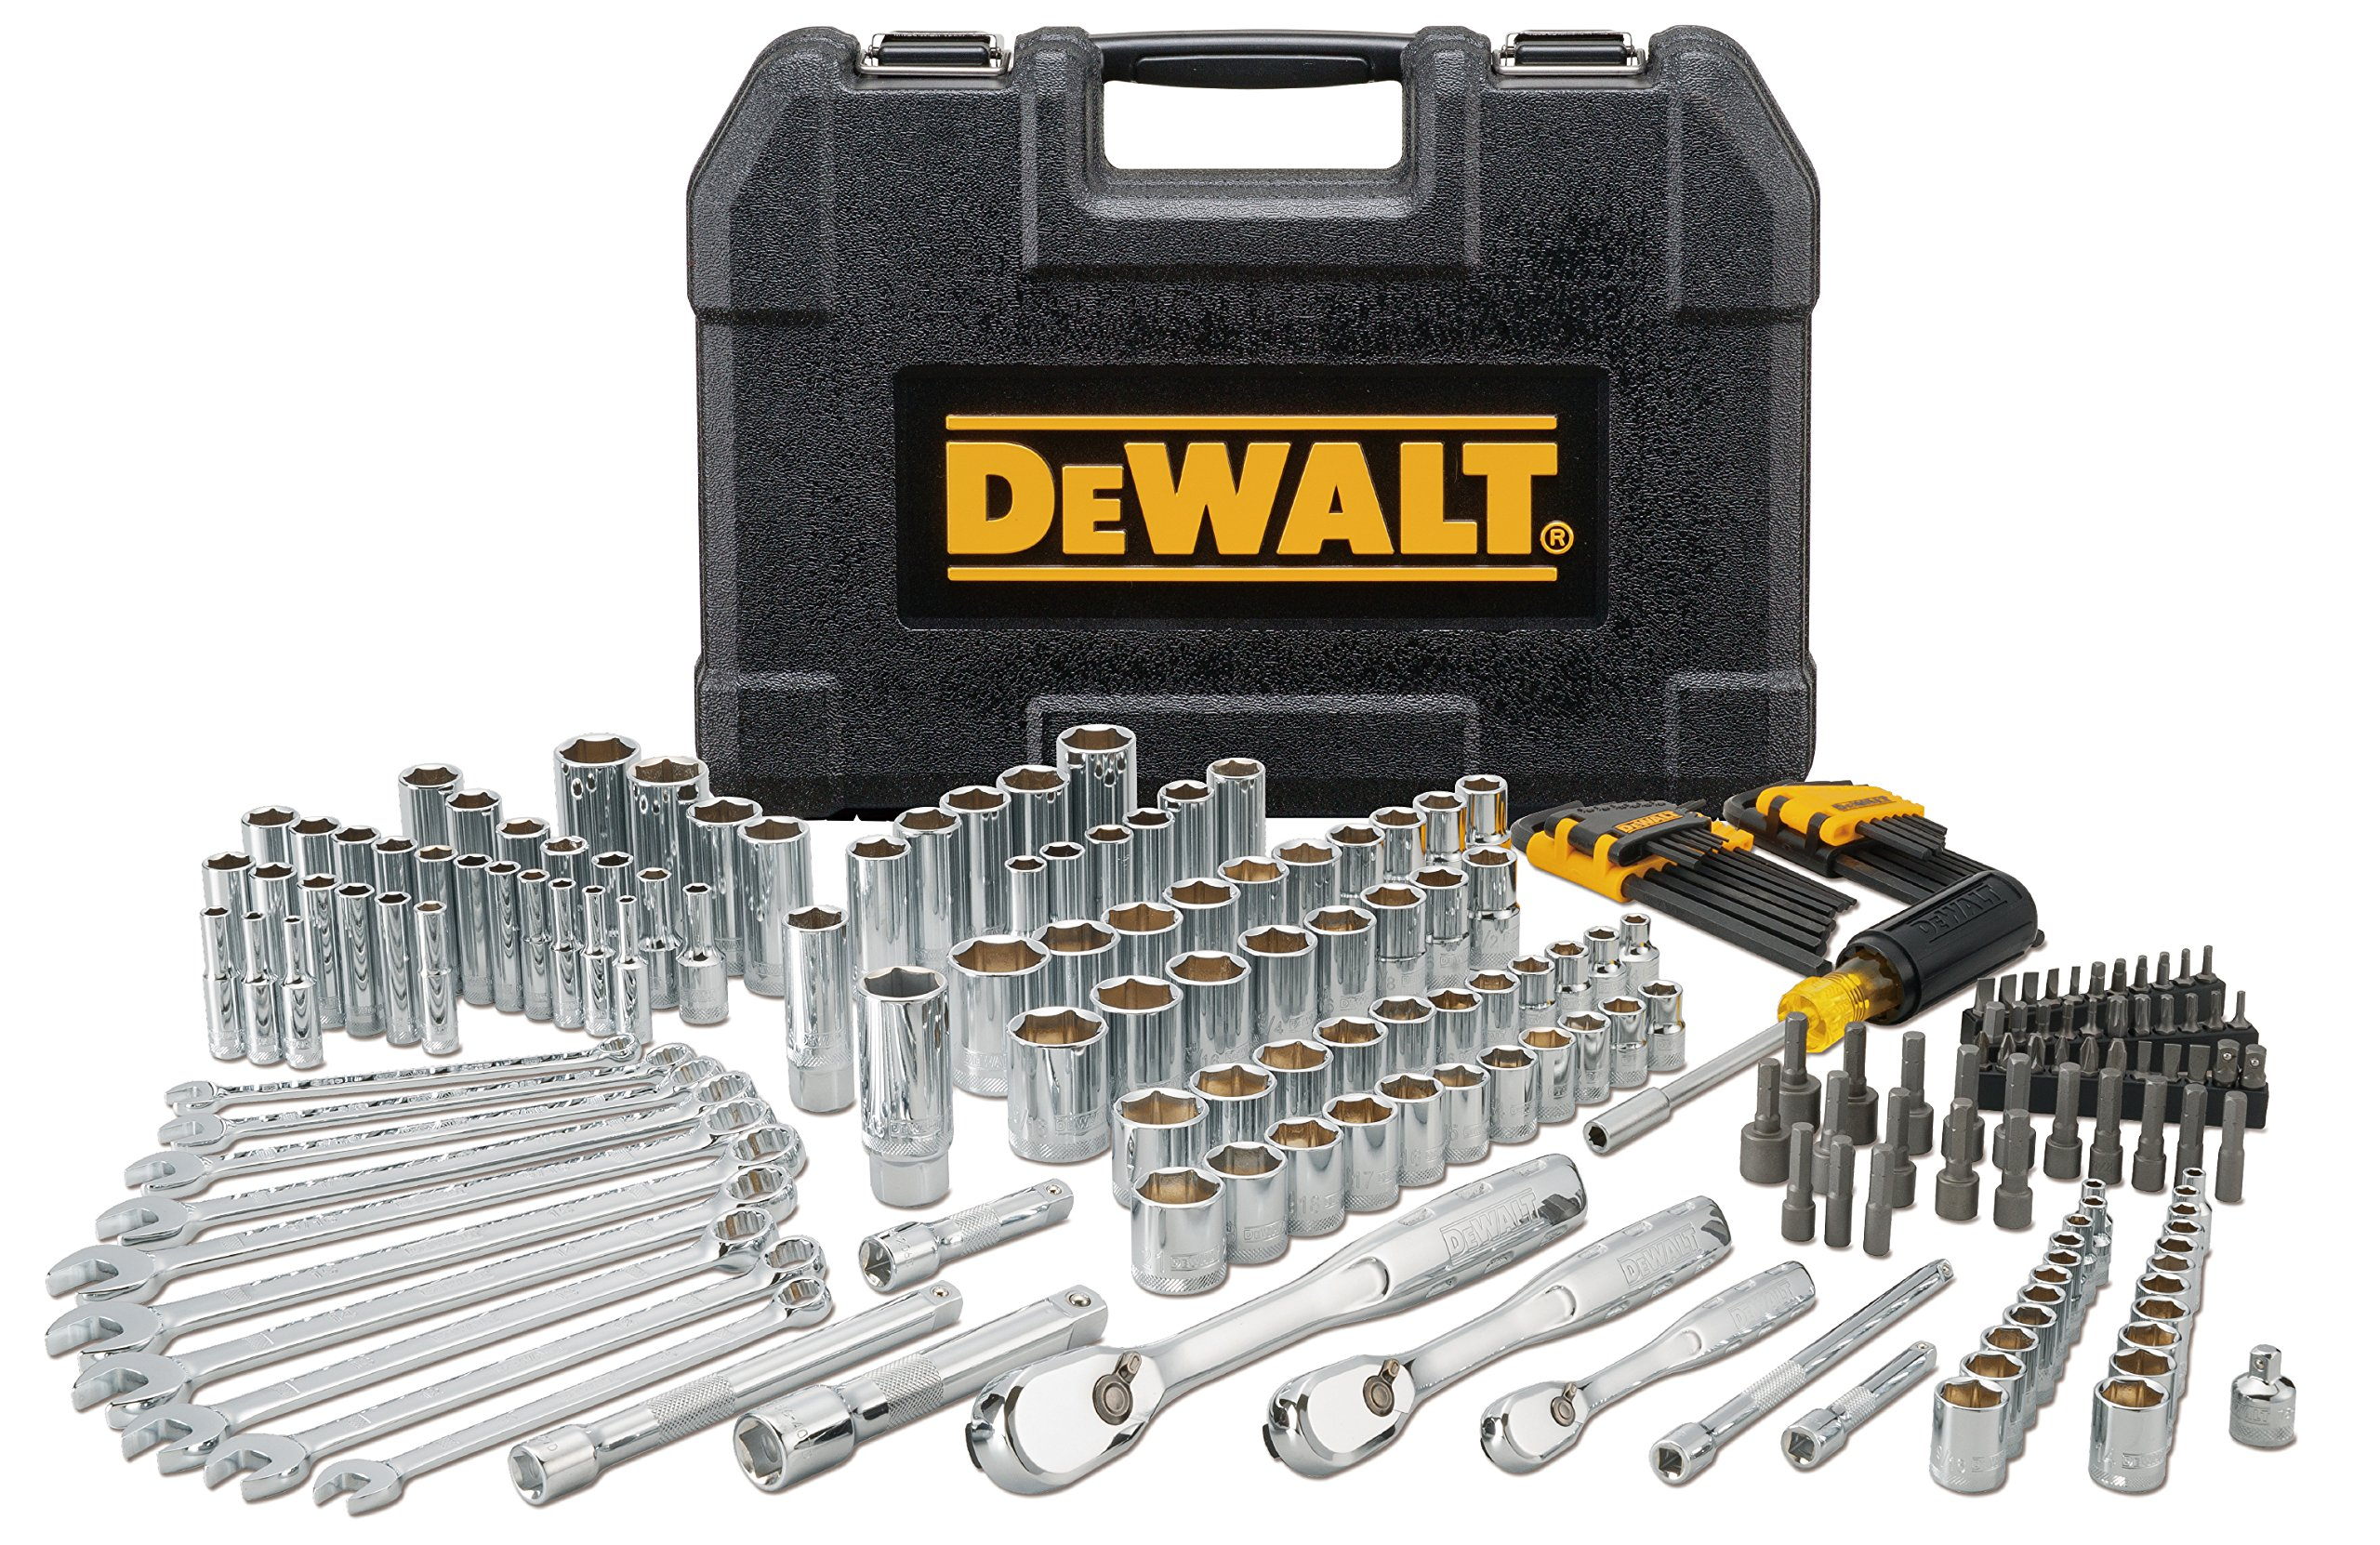 DEWALT DWMT81534 205Pc Mechanics Tool Set by DEWALT